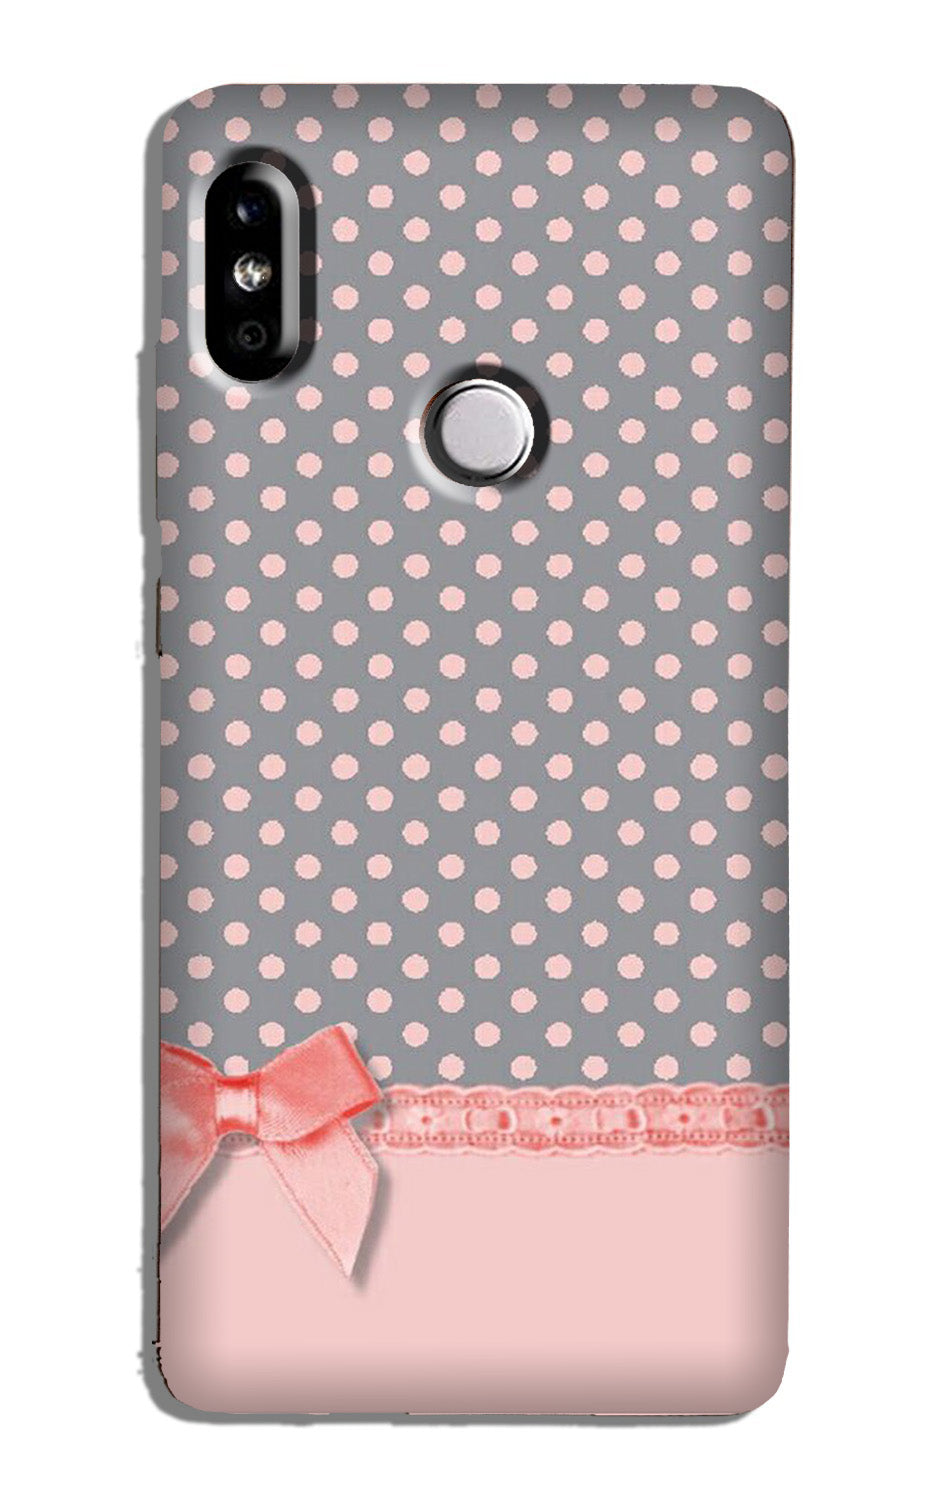 Gift Wrap2 Case for Redmi Note 6 Pro